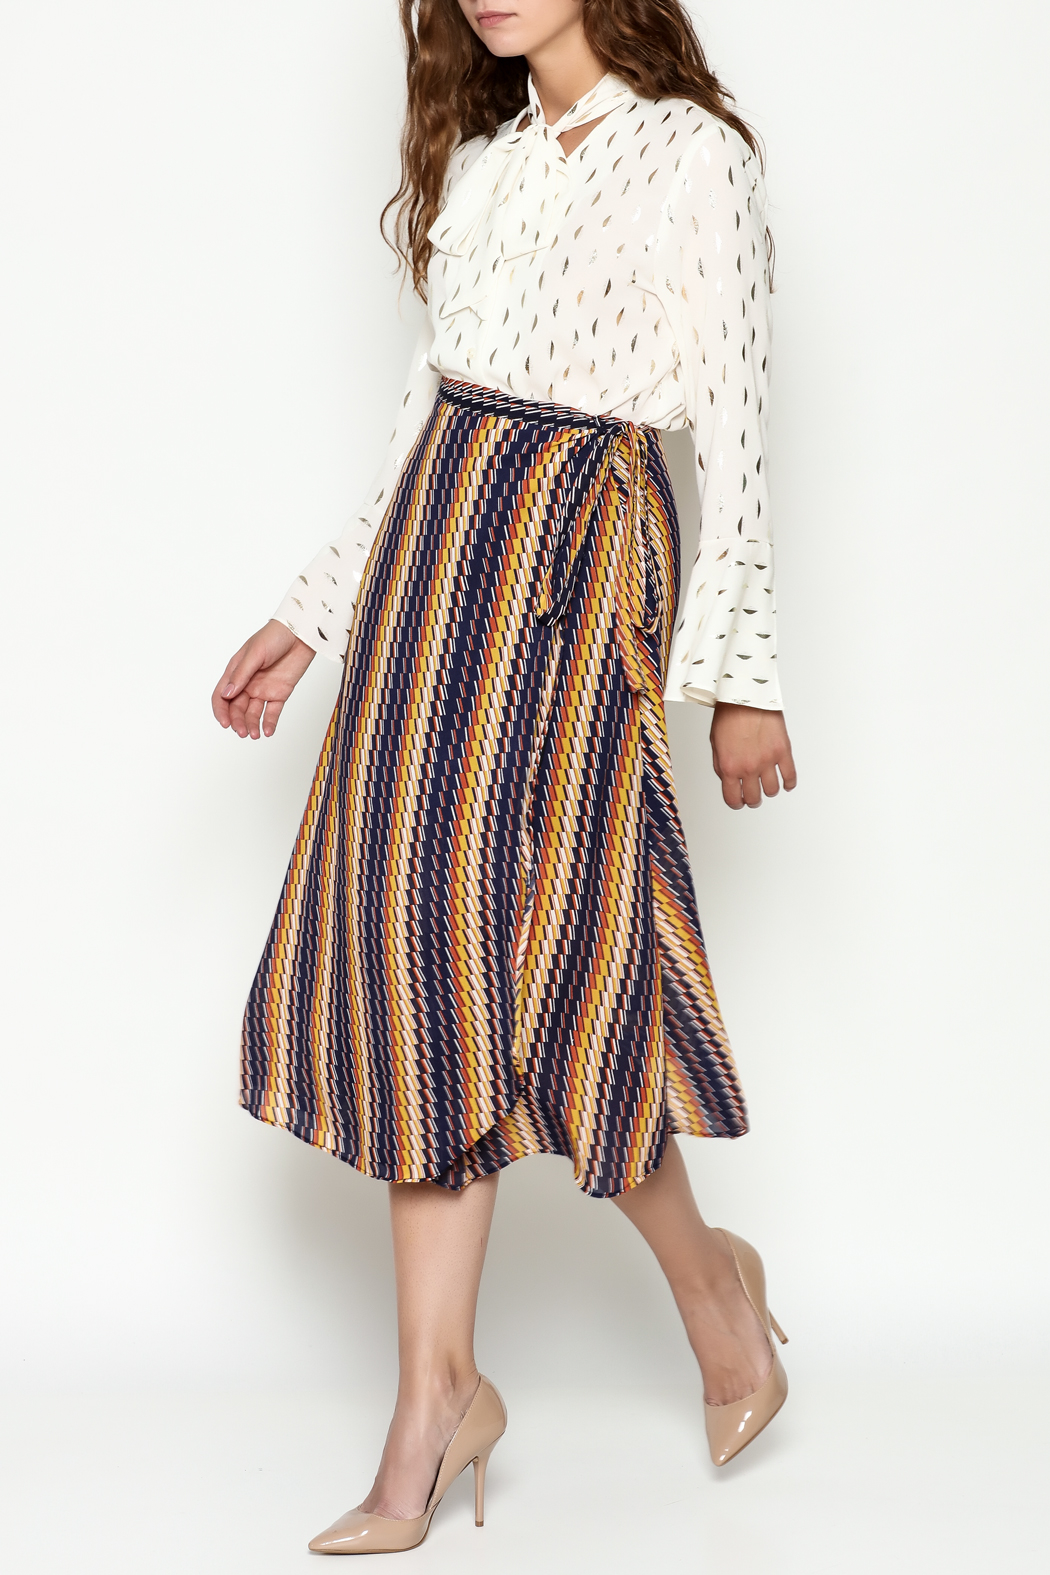 THINK CLOSET Wrap Skirt - Side Cropped Image